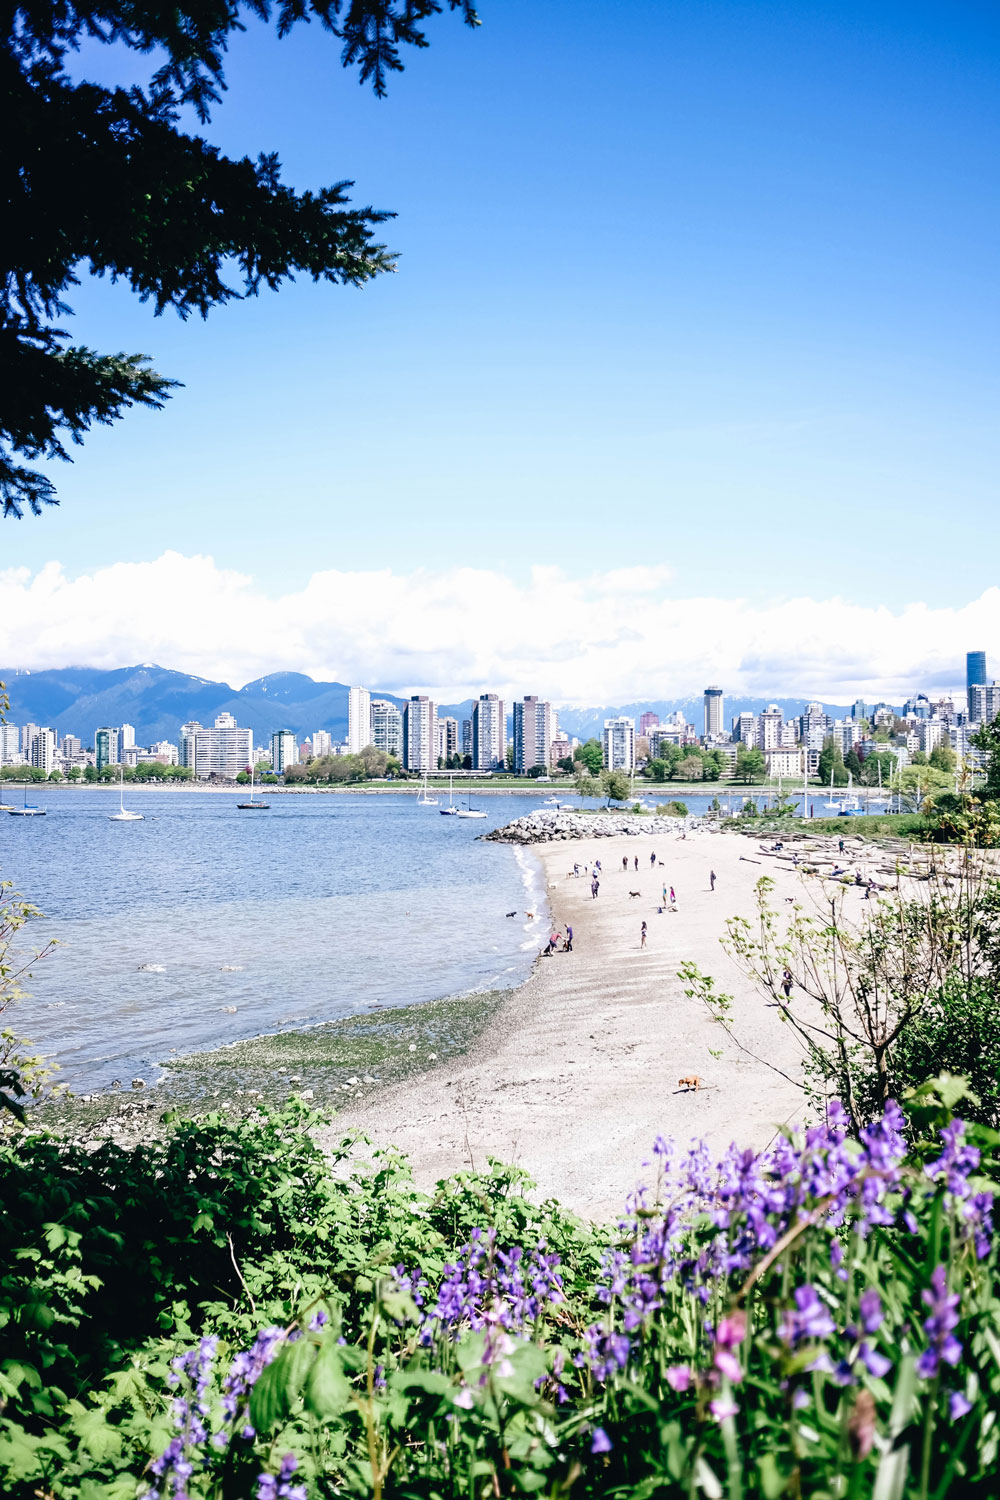 photography tips for beginners, best views in vancouver, what to see in vancouver, what to do in vancouver, best coffee shops in vancouver, vancouver travel guide by To Vogue or Bust